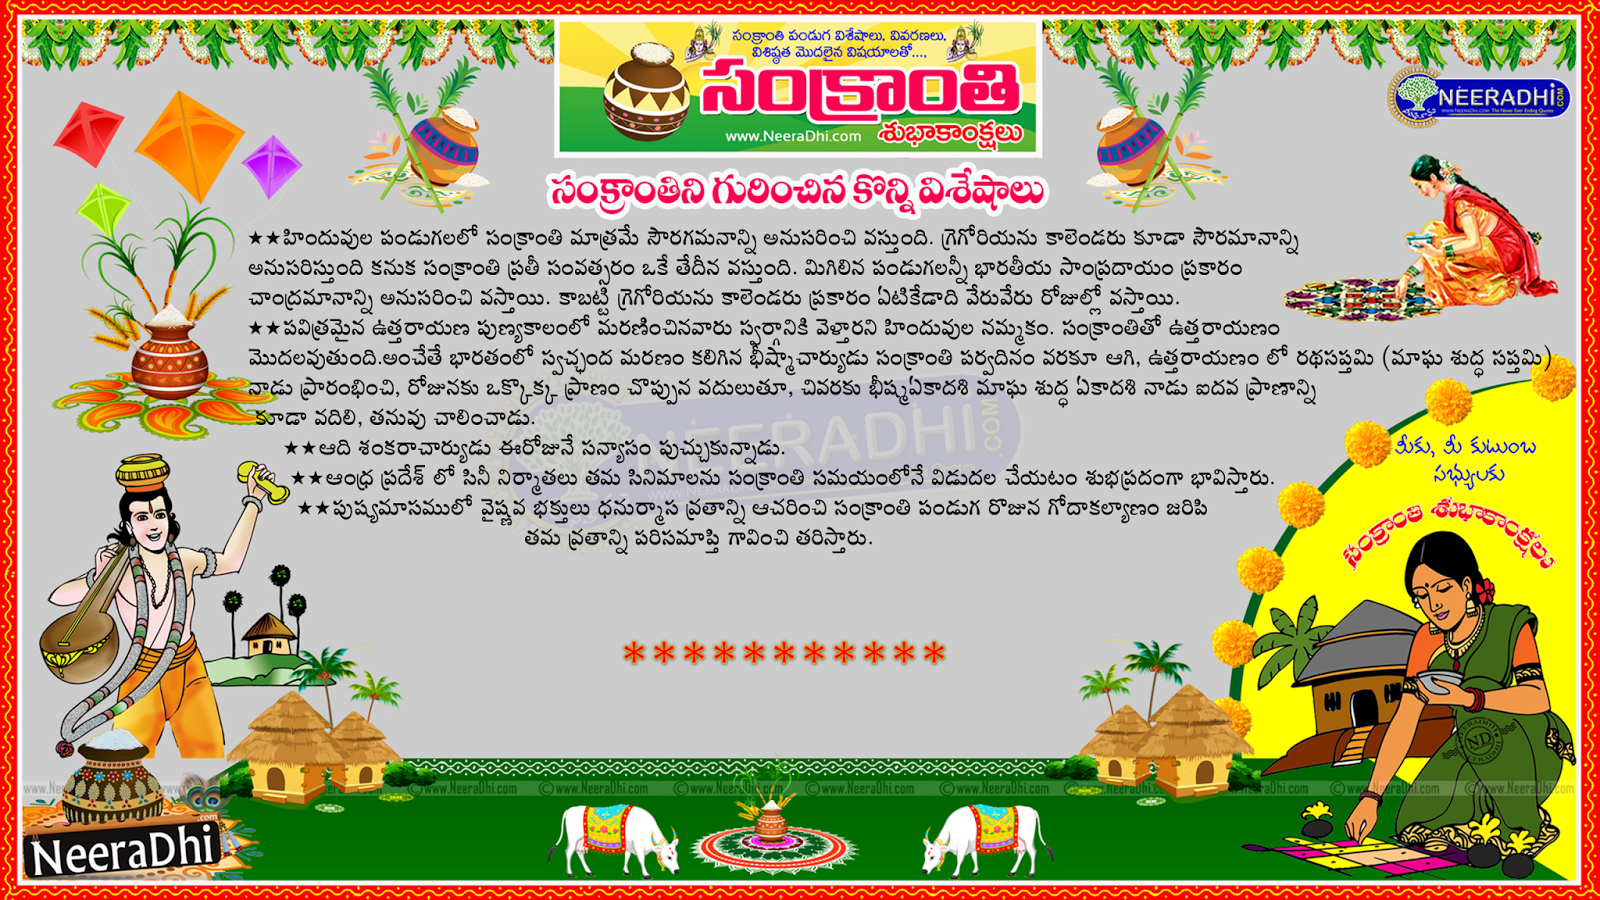 sankranti essay in telugu Hello this makar sankranti quotes images application contains very for sweet makar sankranti quotes images when you download the application you will get many makar sankranti images to send your mates every day.